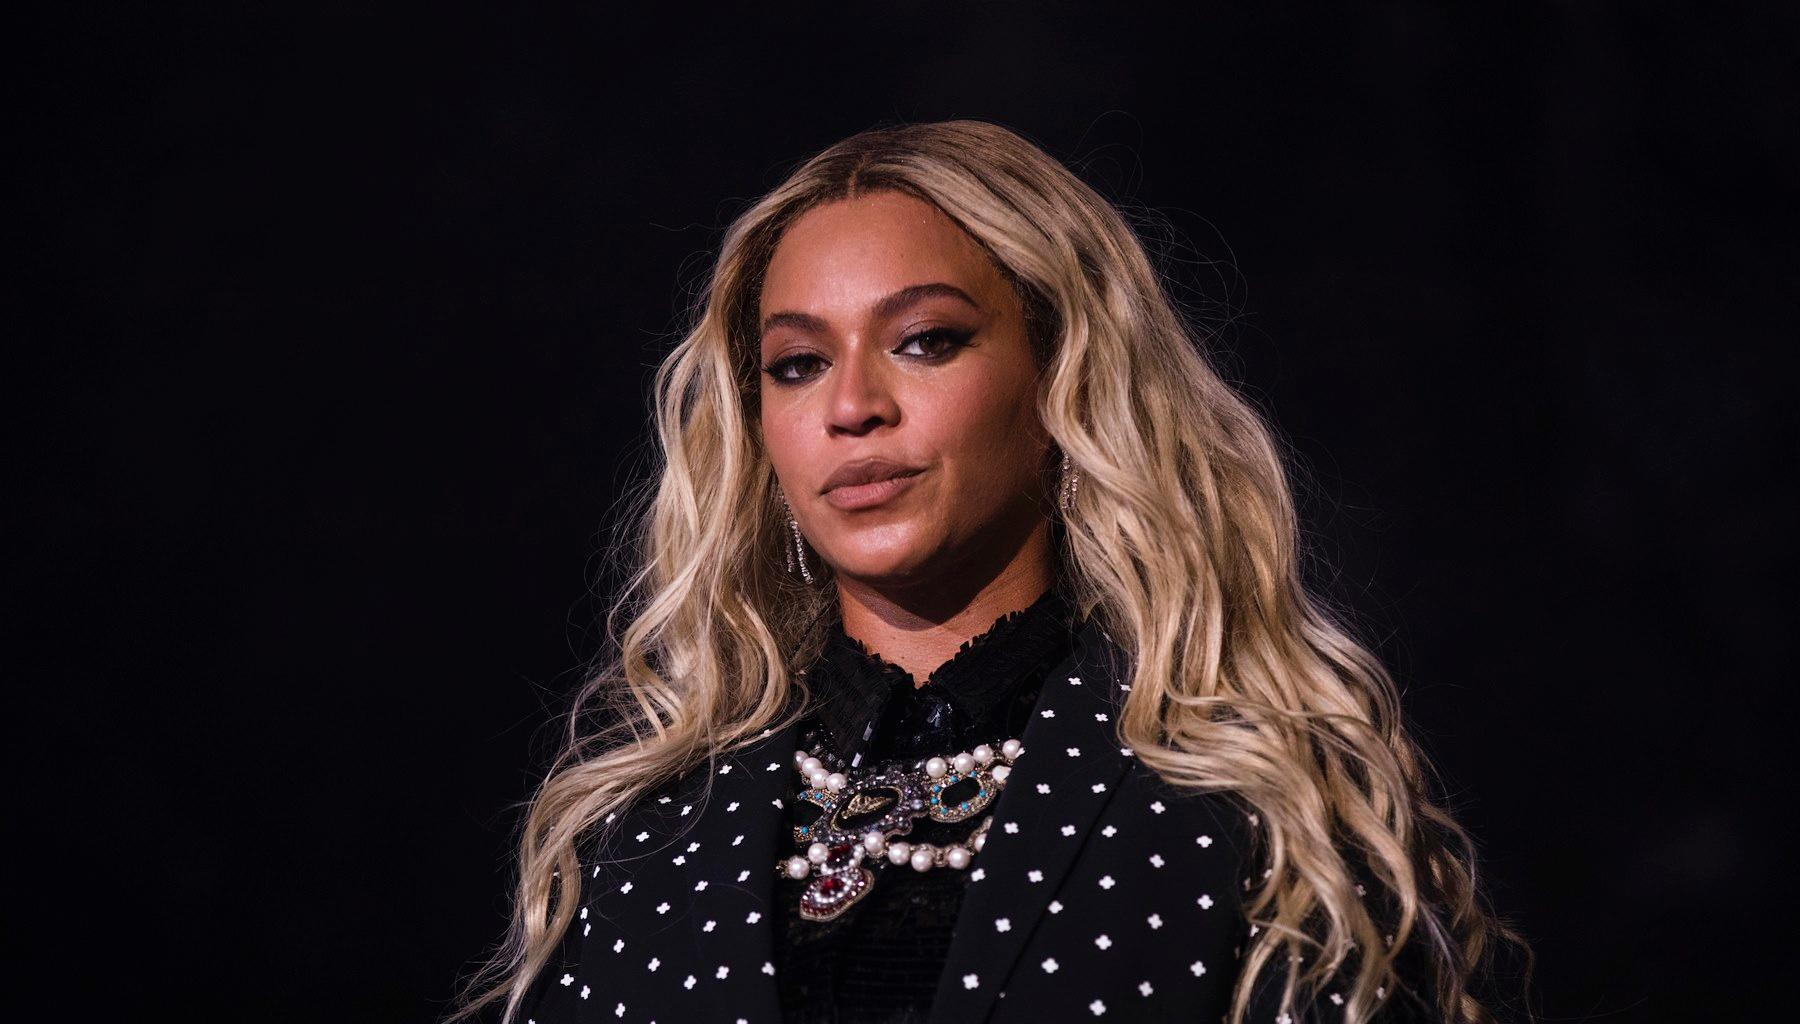 Tina Knowles Goes To Bat For Daughter Beyoncé After Being Hit With Tons Of Criticism For This Video